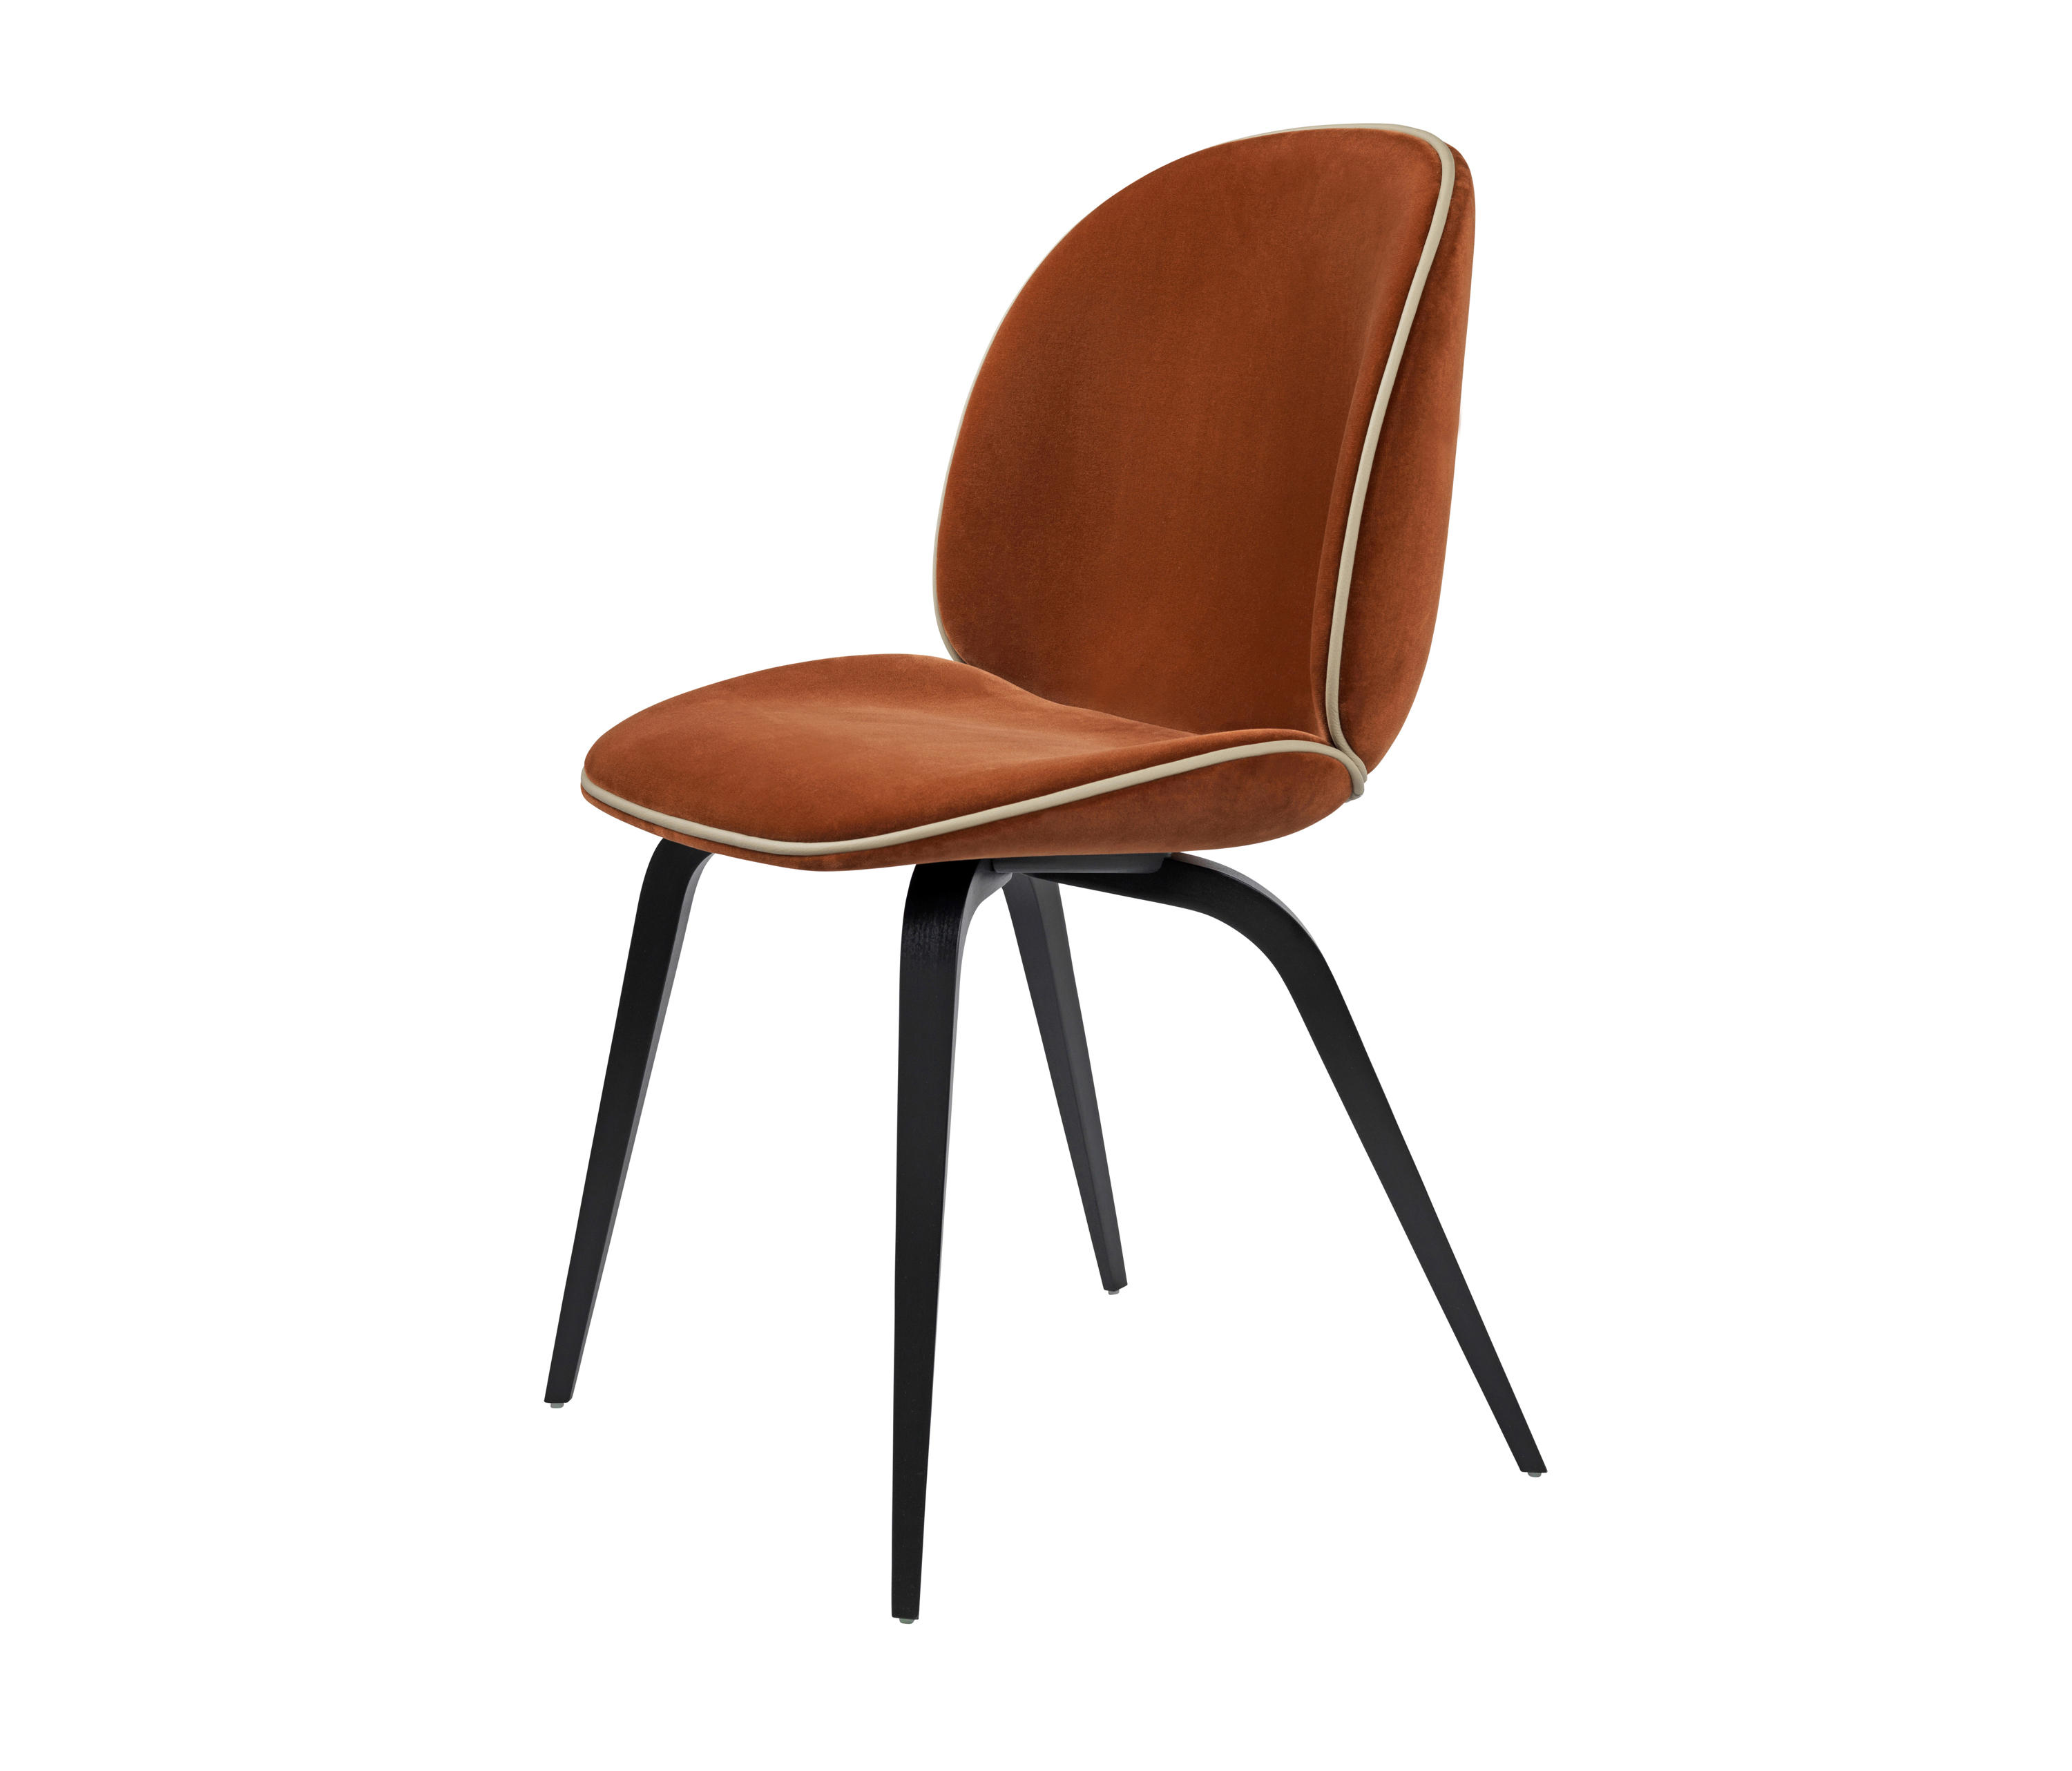 beetle chair wood base chairs from gubi architonic. Black Bedroom Furniture Sets. Home Design Ideas